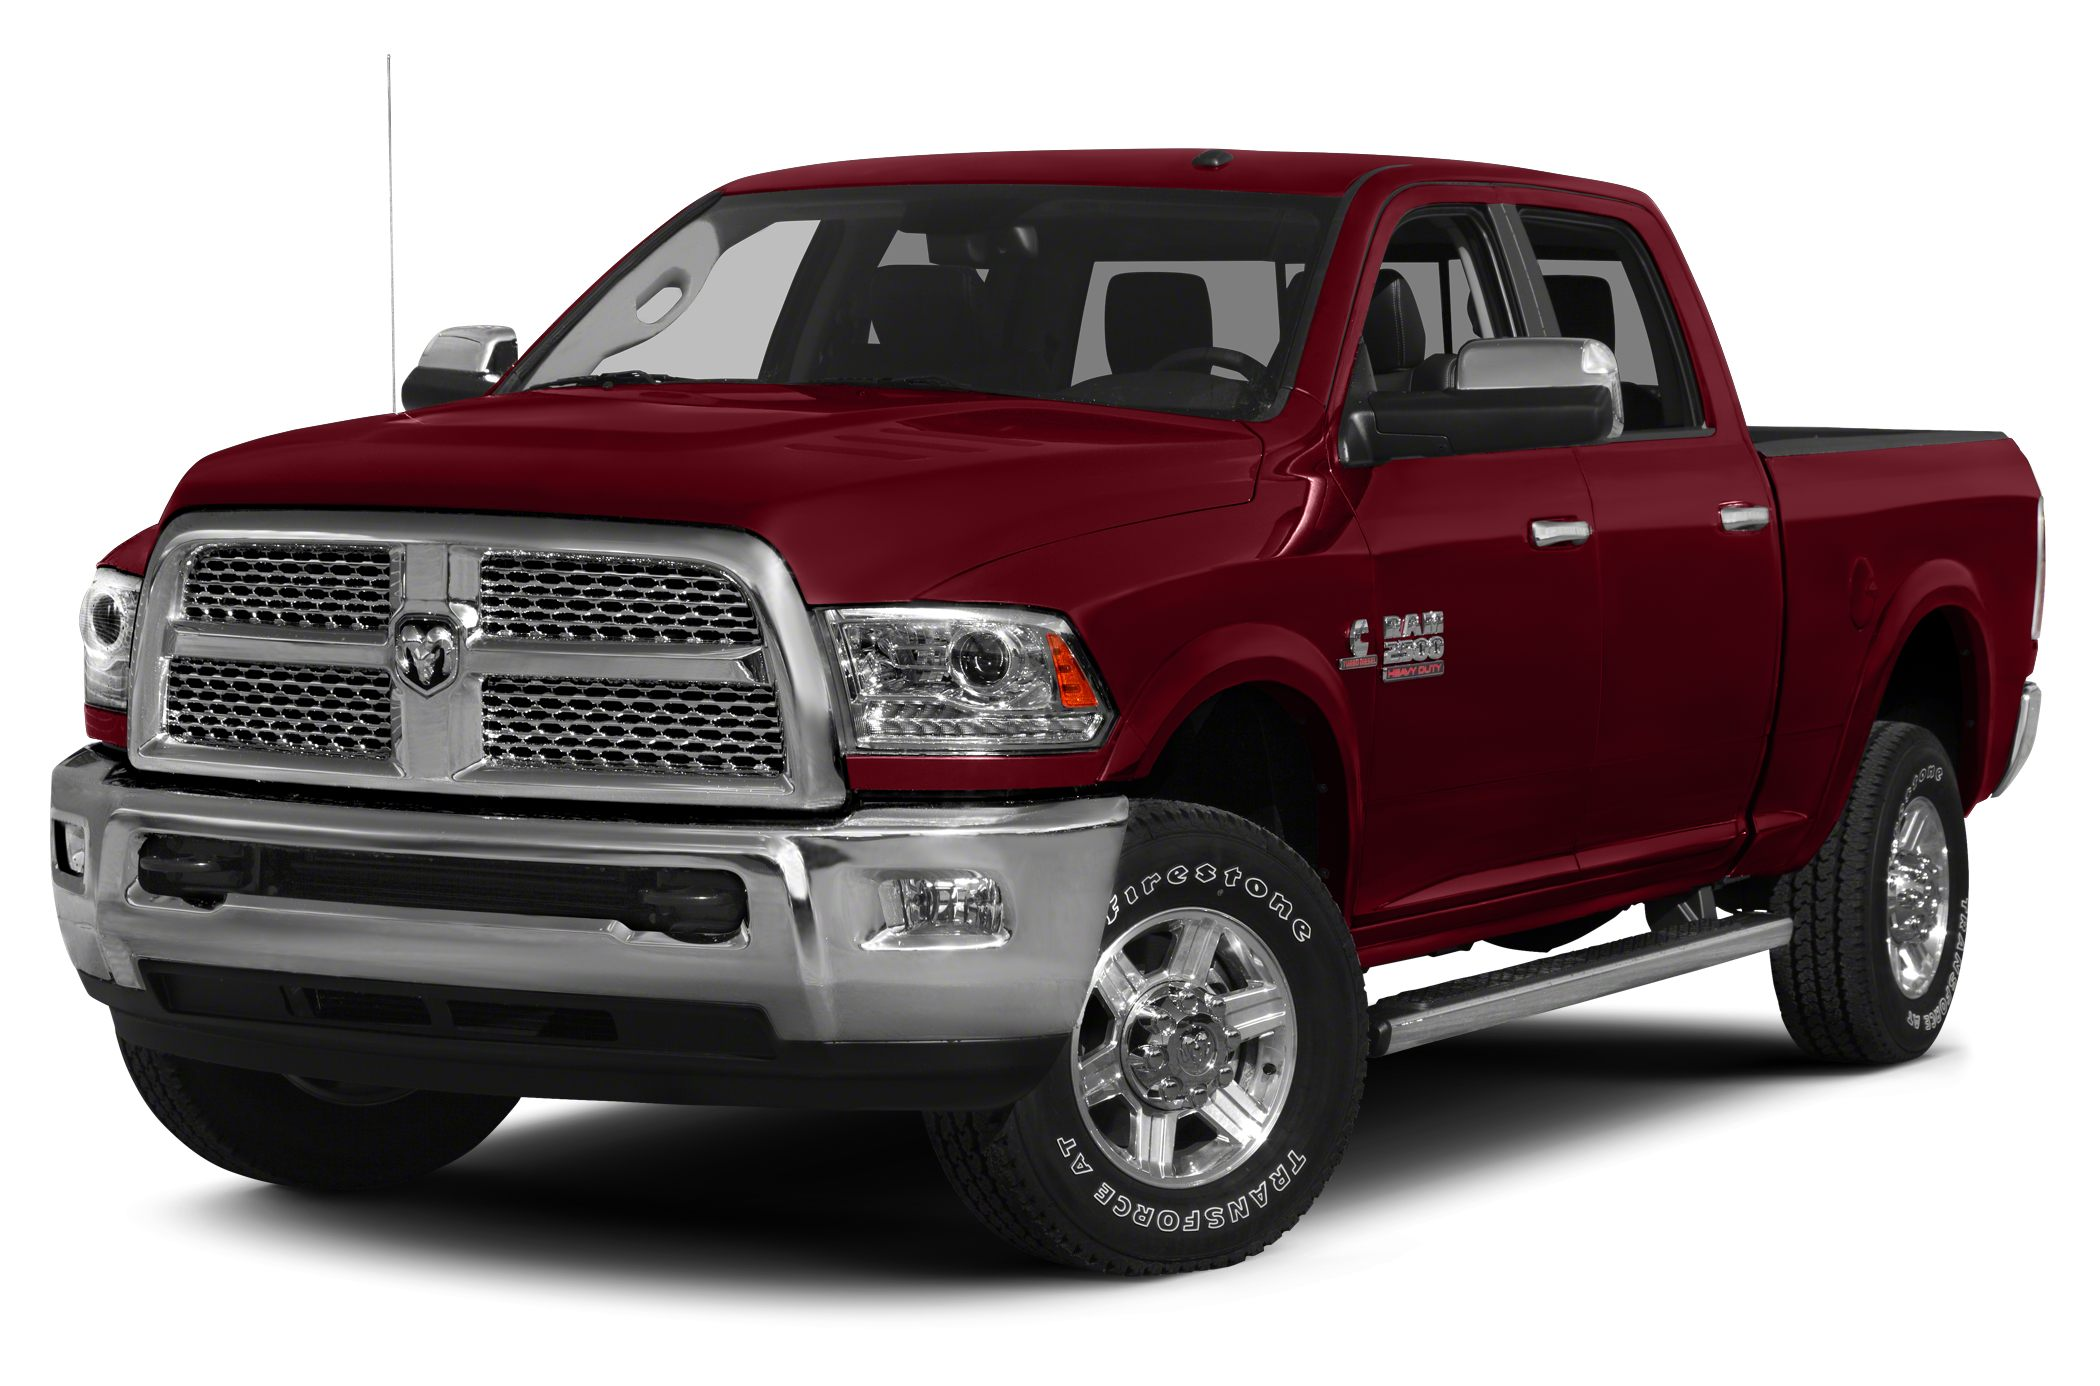 2015 RAM 2500 SLT Crew Cab Pickup for sale in Lithia Springs for $56,710 with 3 miles